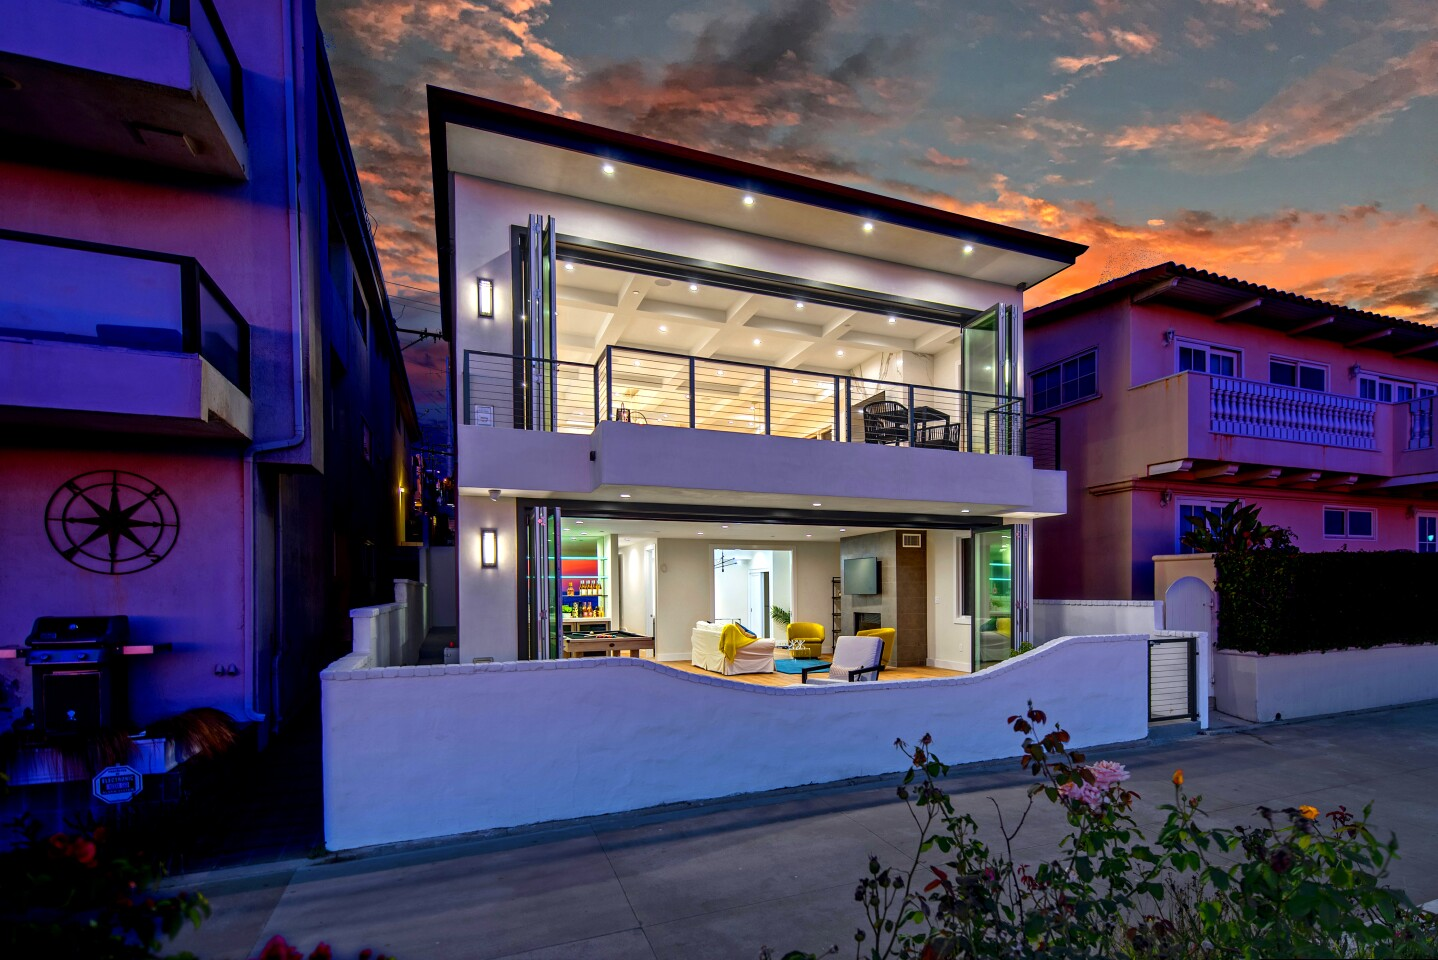 House 1: 3808 the Strand, Manhattan Beach, 90266 (Vista Sotheby's International Realty)